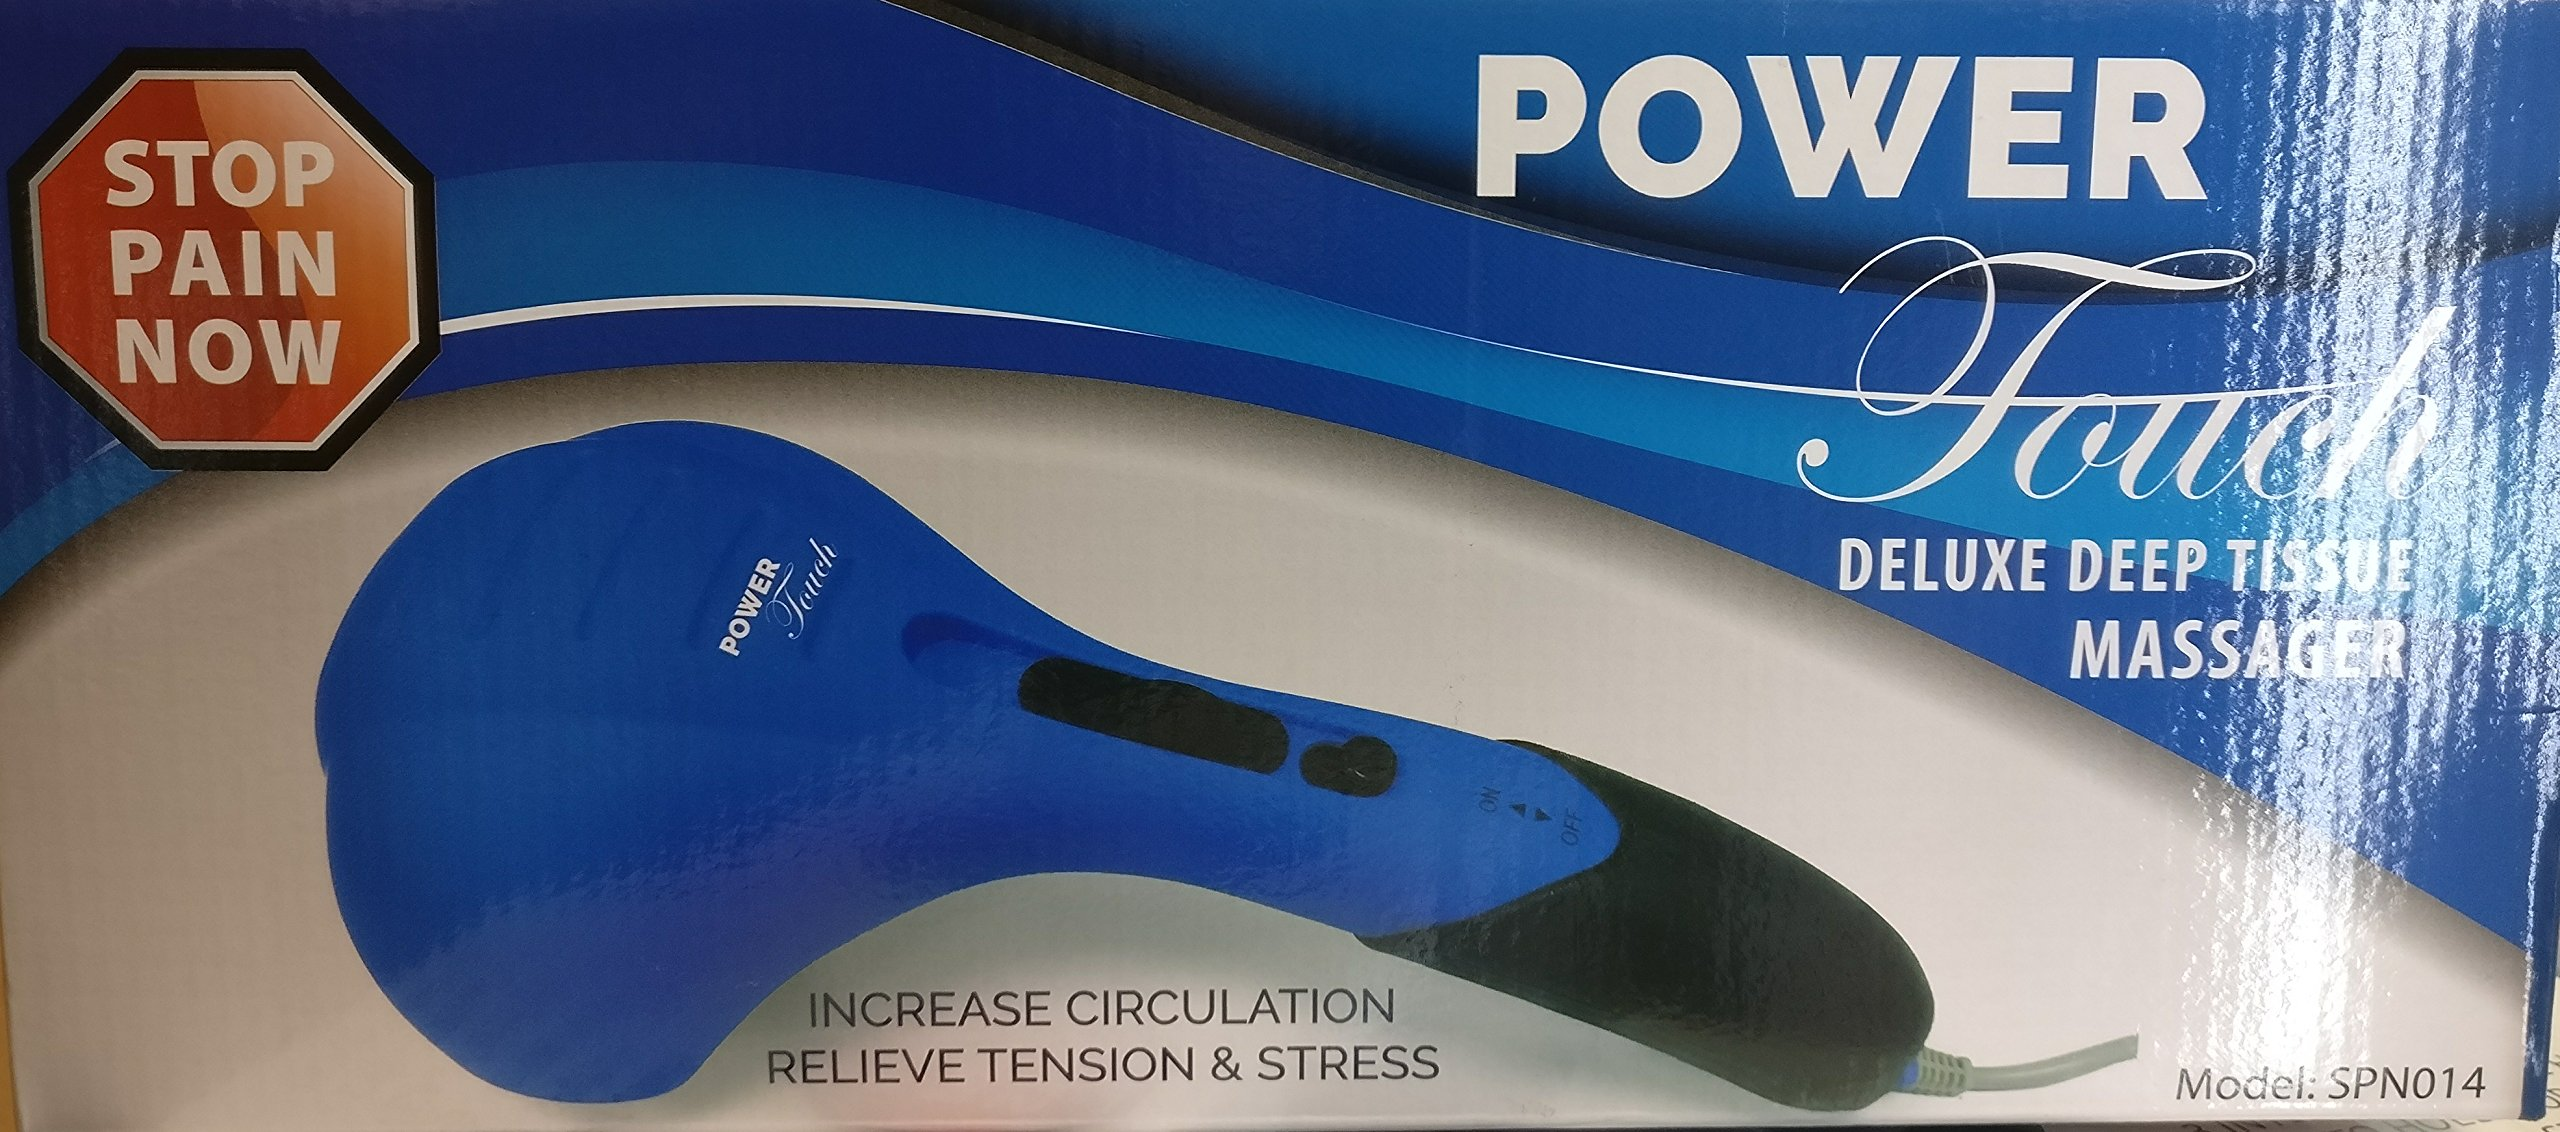 Power Touch Deluxe Deep Tissue Massager Blue by Power Touch